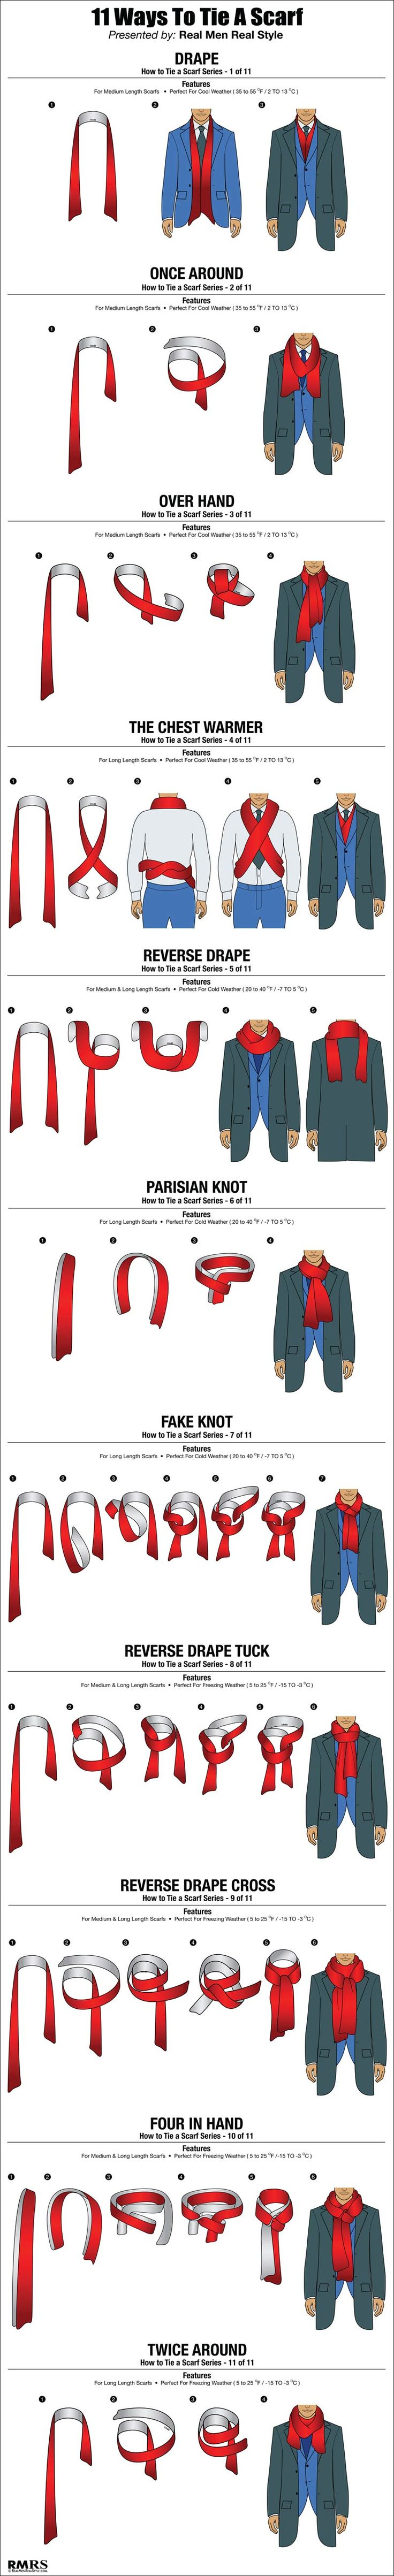 How To Tie A Scarf Chart – 11 Masculine Ways To Tie Scarves (via @@Antonio Covelo Centeno)